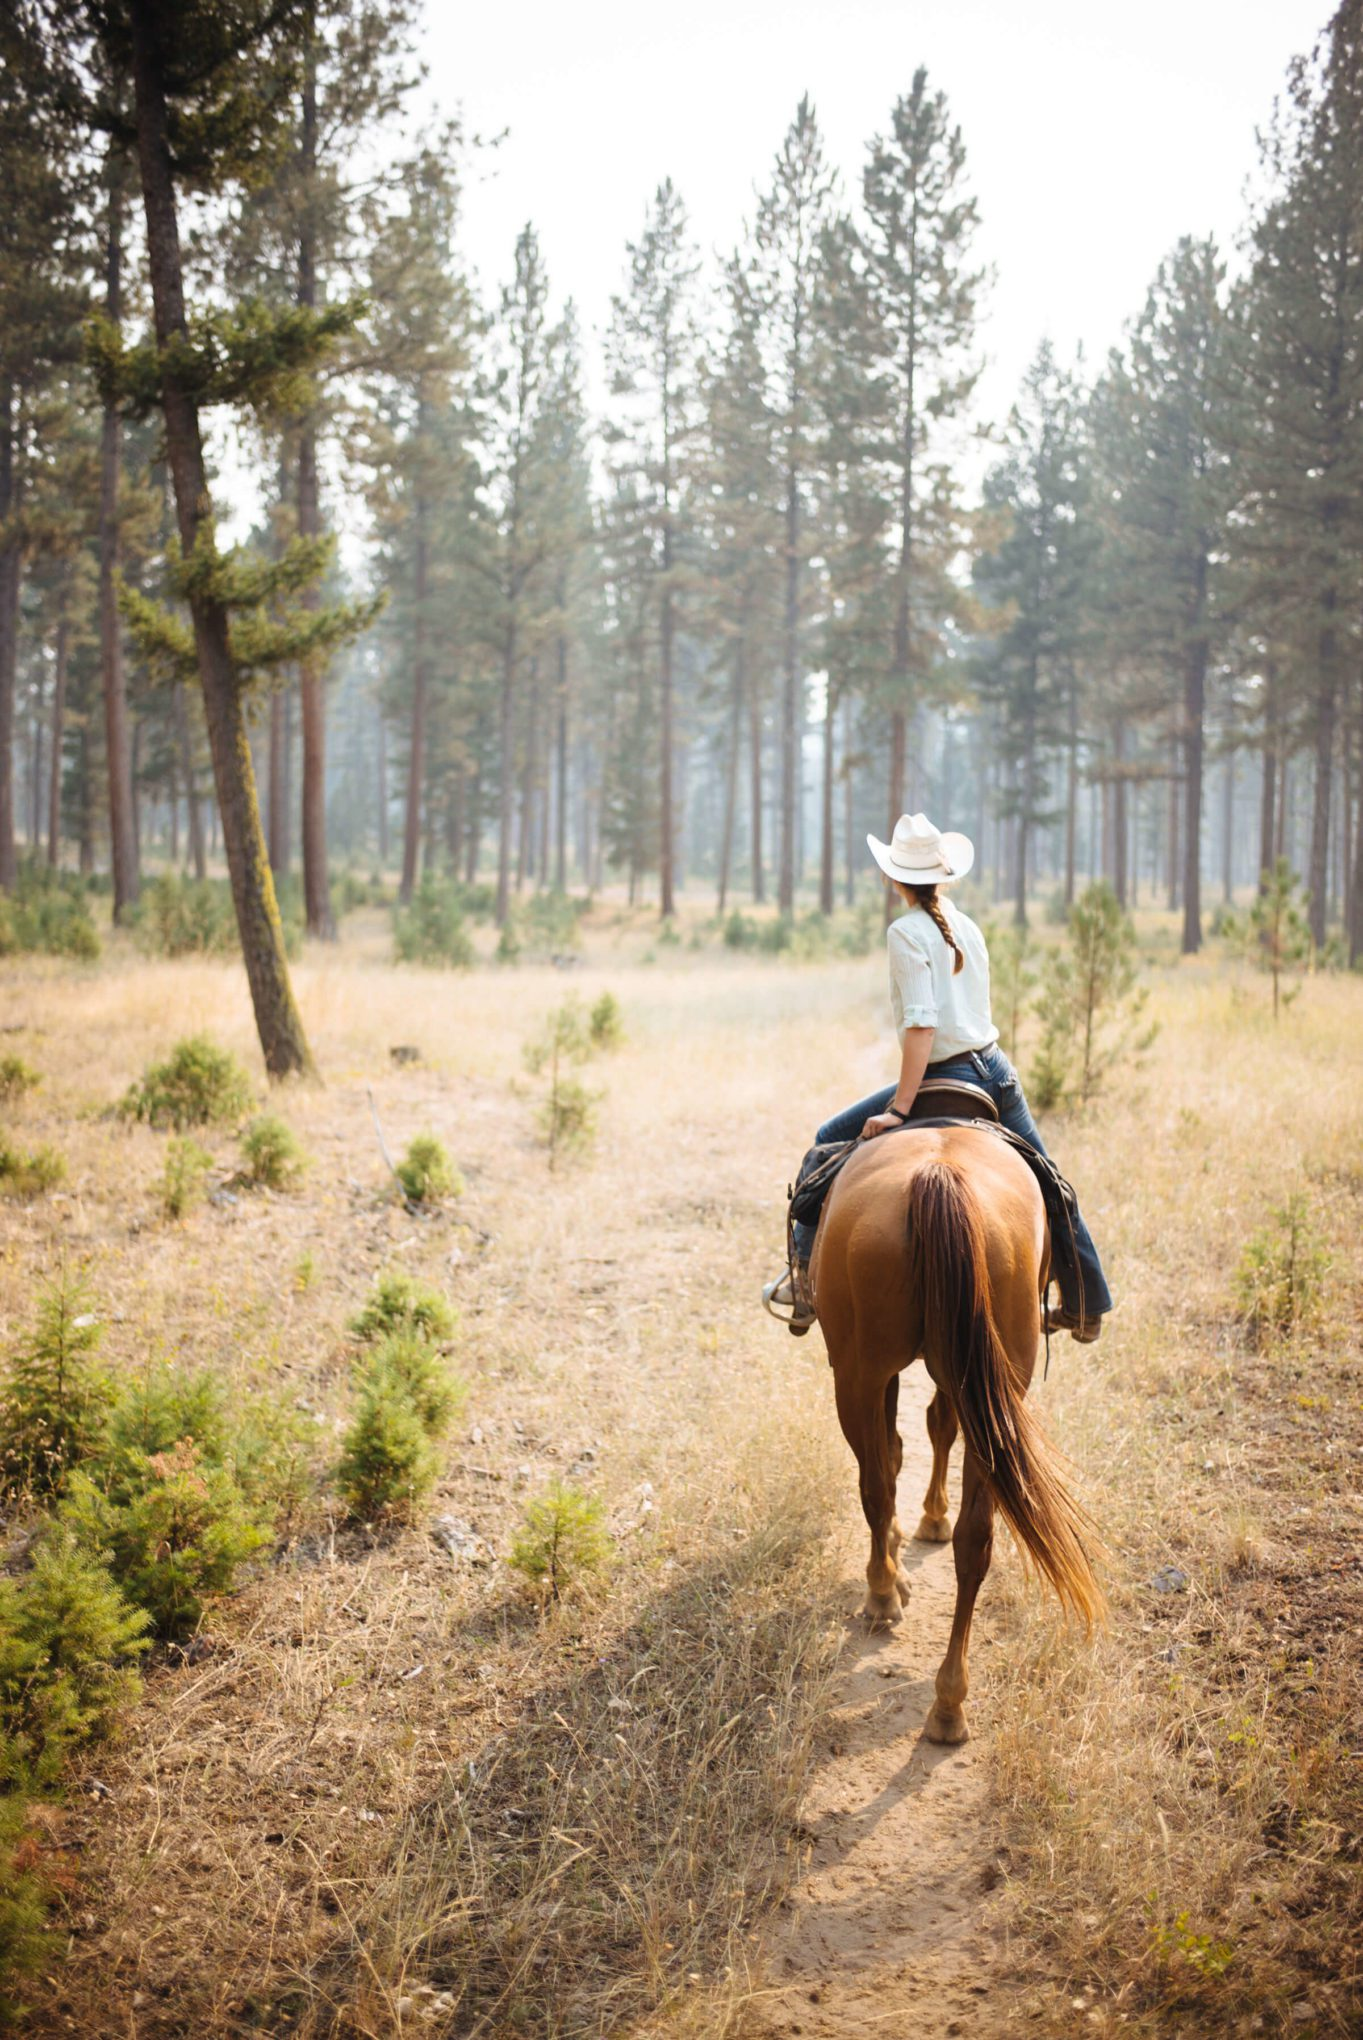 Horseback riding at Paws up in Montana with The Taste Edit